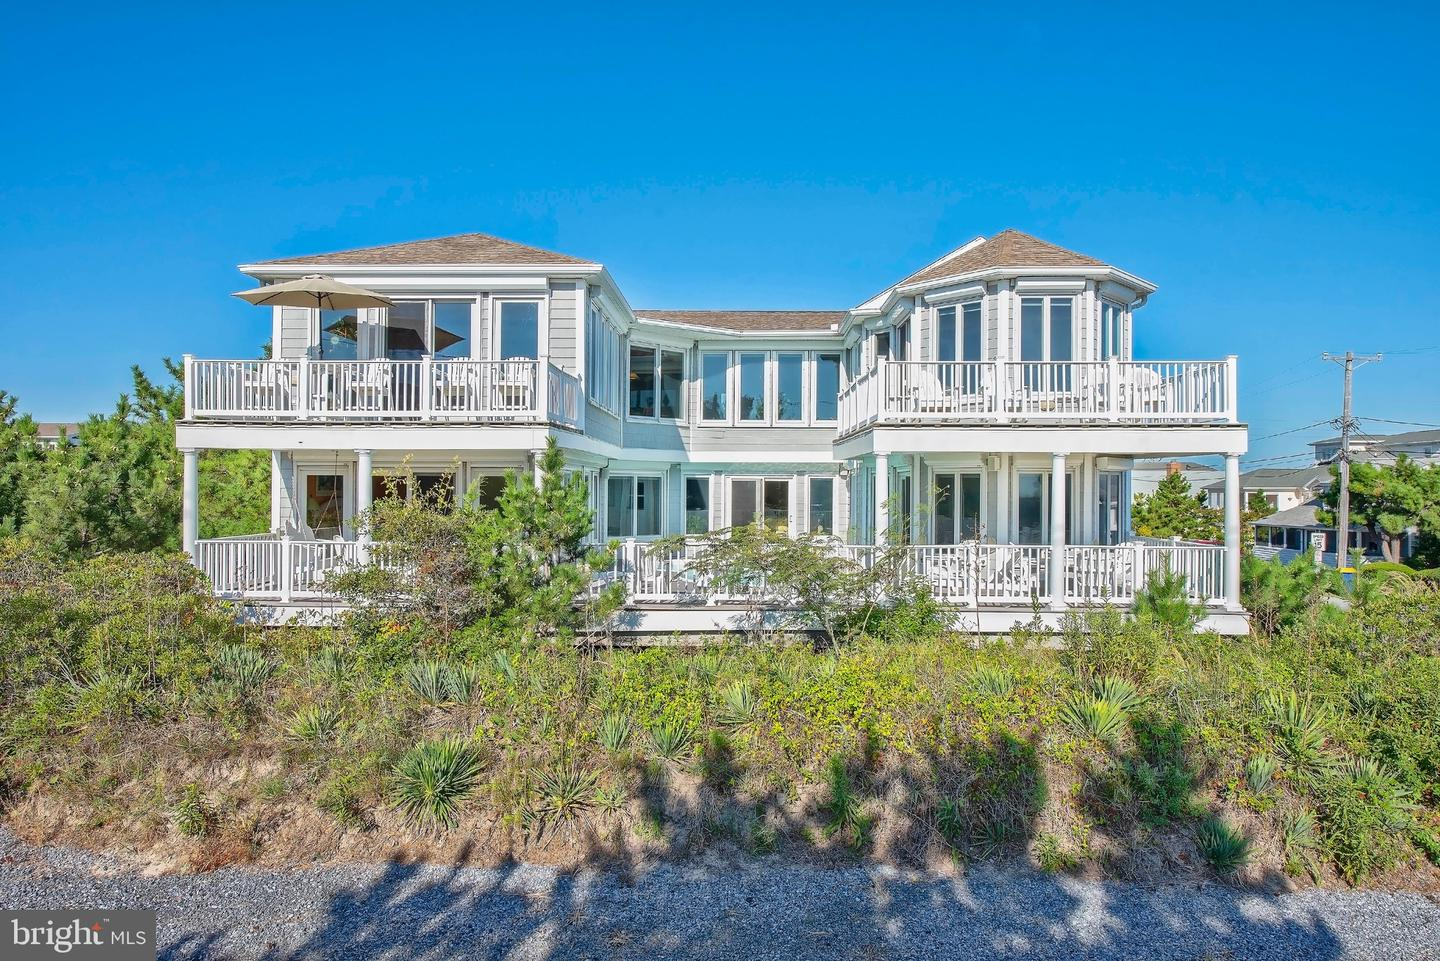 DESU147280-302007866995-2019-08-31-13-42-10 810 Bunting Ave | Fenwick Island, DE Real Estate For Sale | MLS# Desu147280  - Jack Lingo REALTOR